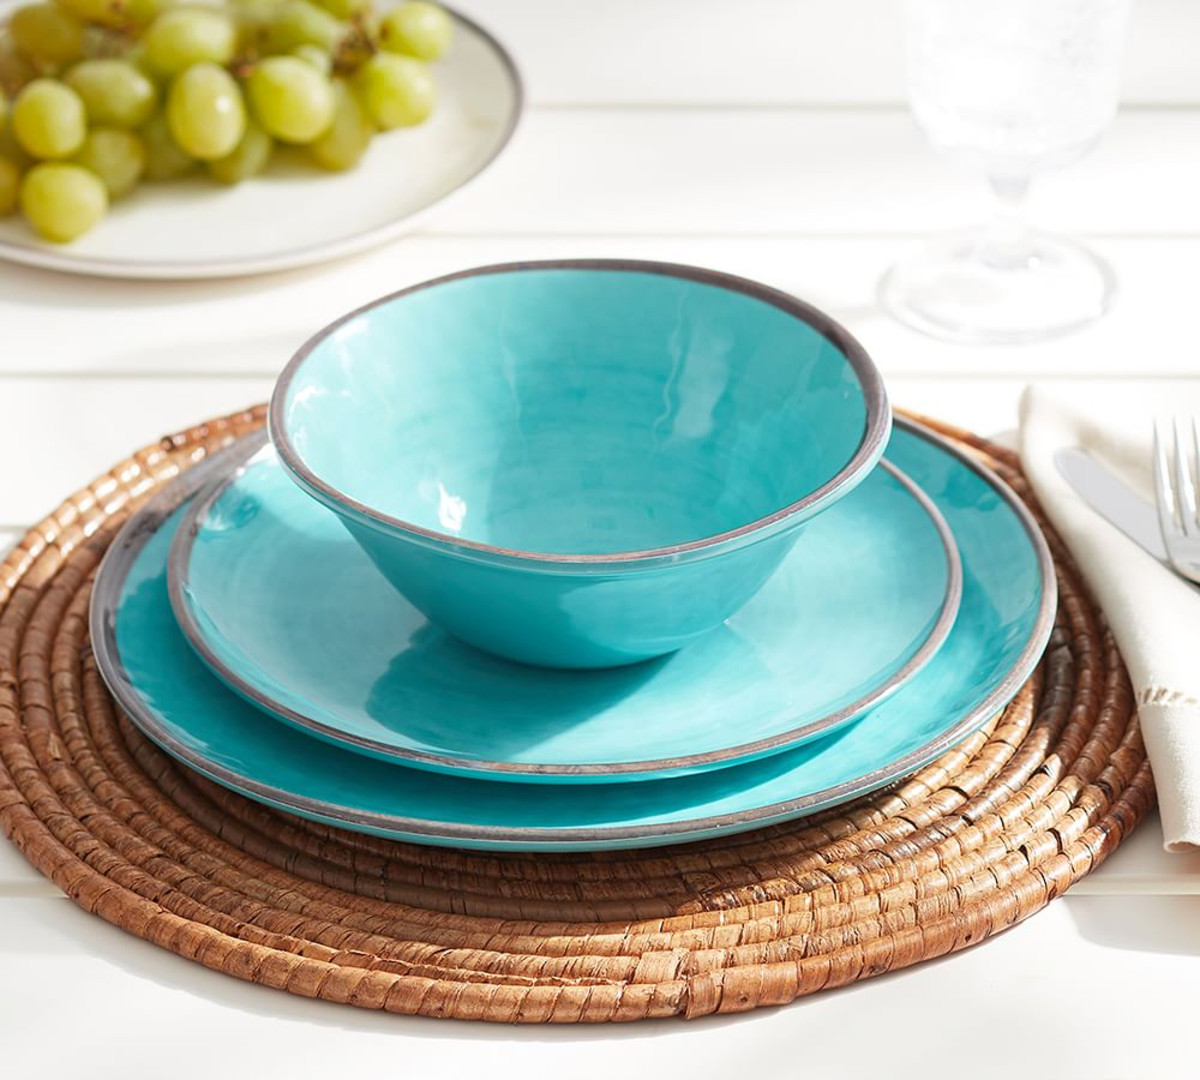 Incroyable Outdoor Dining Plate Sets